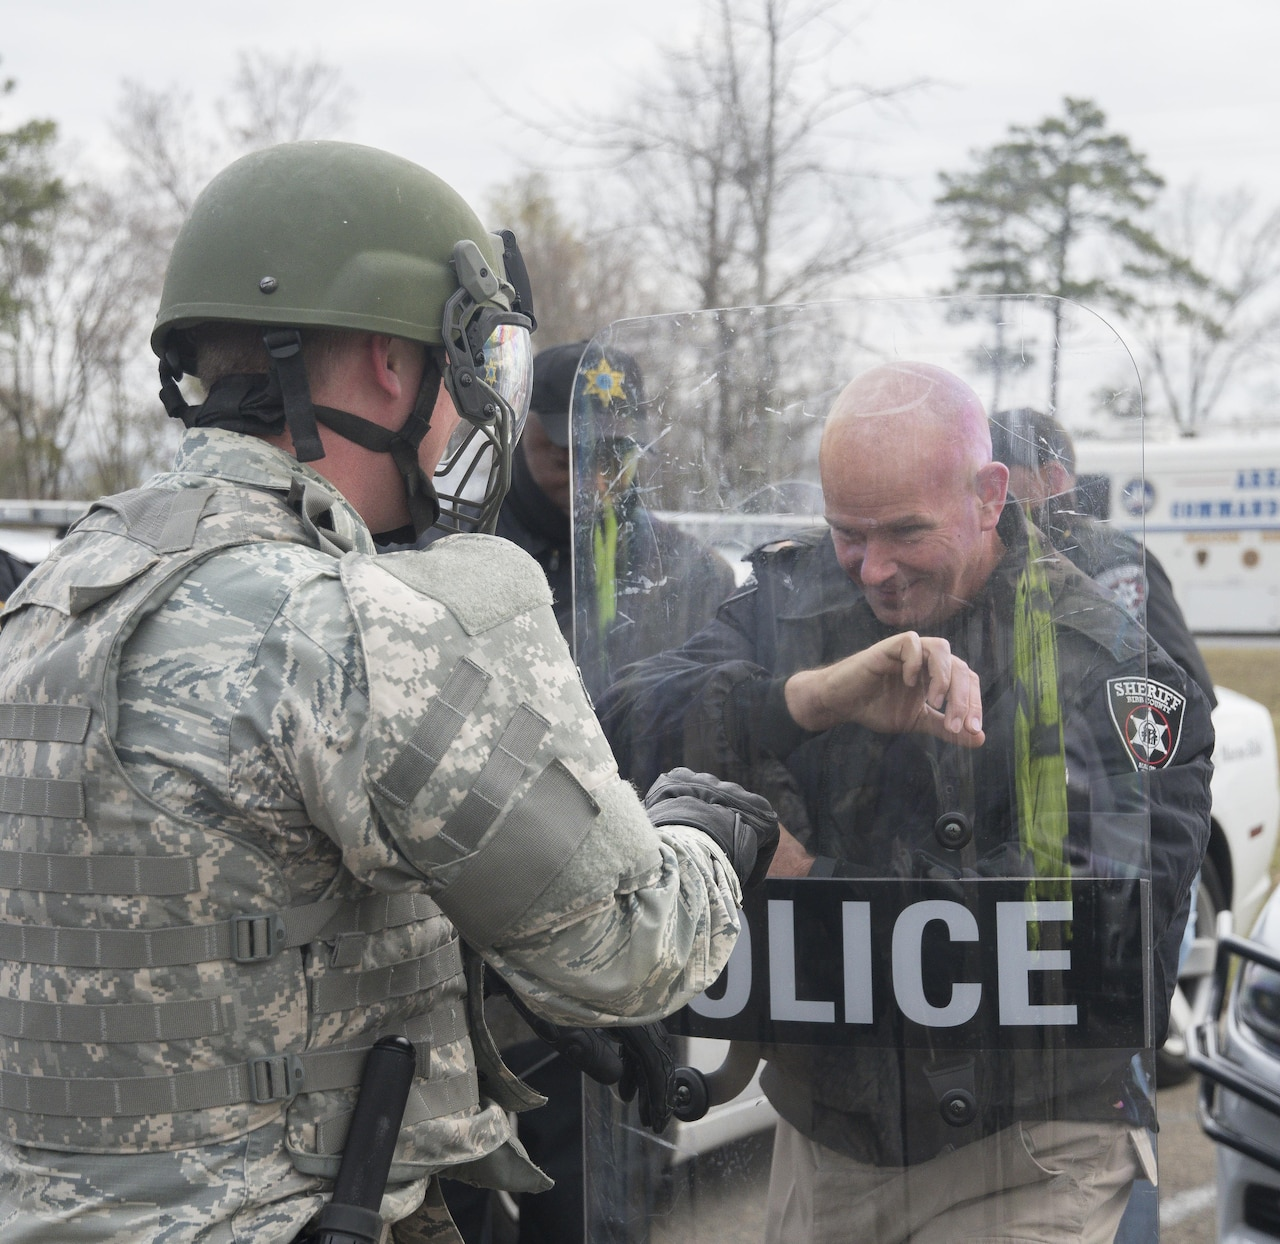 A Georgia Air National Guard security forces airman partners with Cpl. Greg Thomas, a police officer with the Macon-Bibb County Sheriff's Department, to practice crowd control techniques during exercise Vigilant Guard 2017 in Macon, Ga., March 14, 2017. The 116th Air Control Wing and the 165th Airlift Wing worked with the Macon-Bibb Emergency Management Agency and other agencies to practice crowd control techniques as part of a hurricane simulation to ensure the safety of citizens during possible natural disasters or catastrophes. Vigilant Guard Georgia 2017 is a joint regional training exercise sponsored by U.S. Northern Command in conjunction with the National Guard Bureau. Georgia Air National Guard photo by Master Sgt. Regina Young